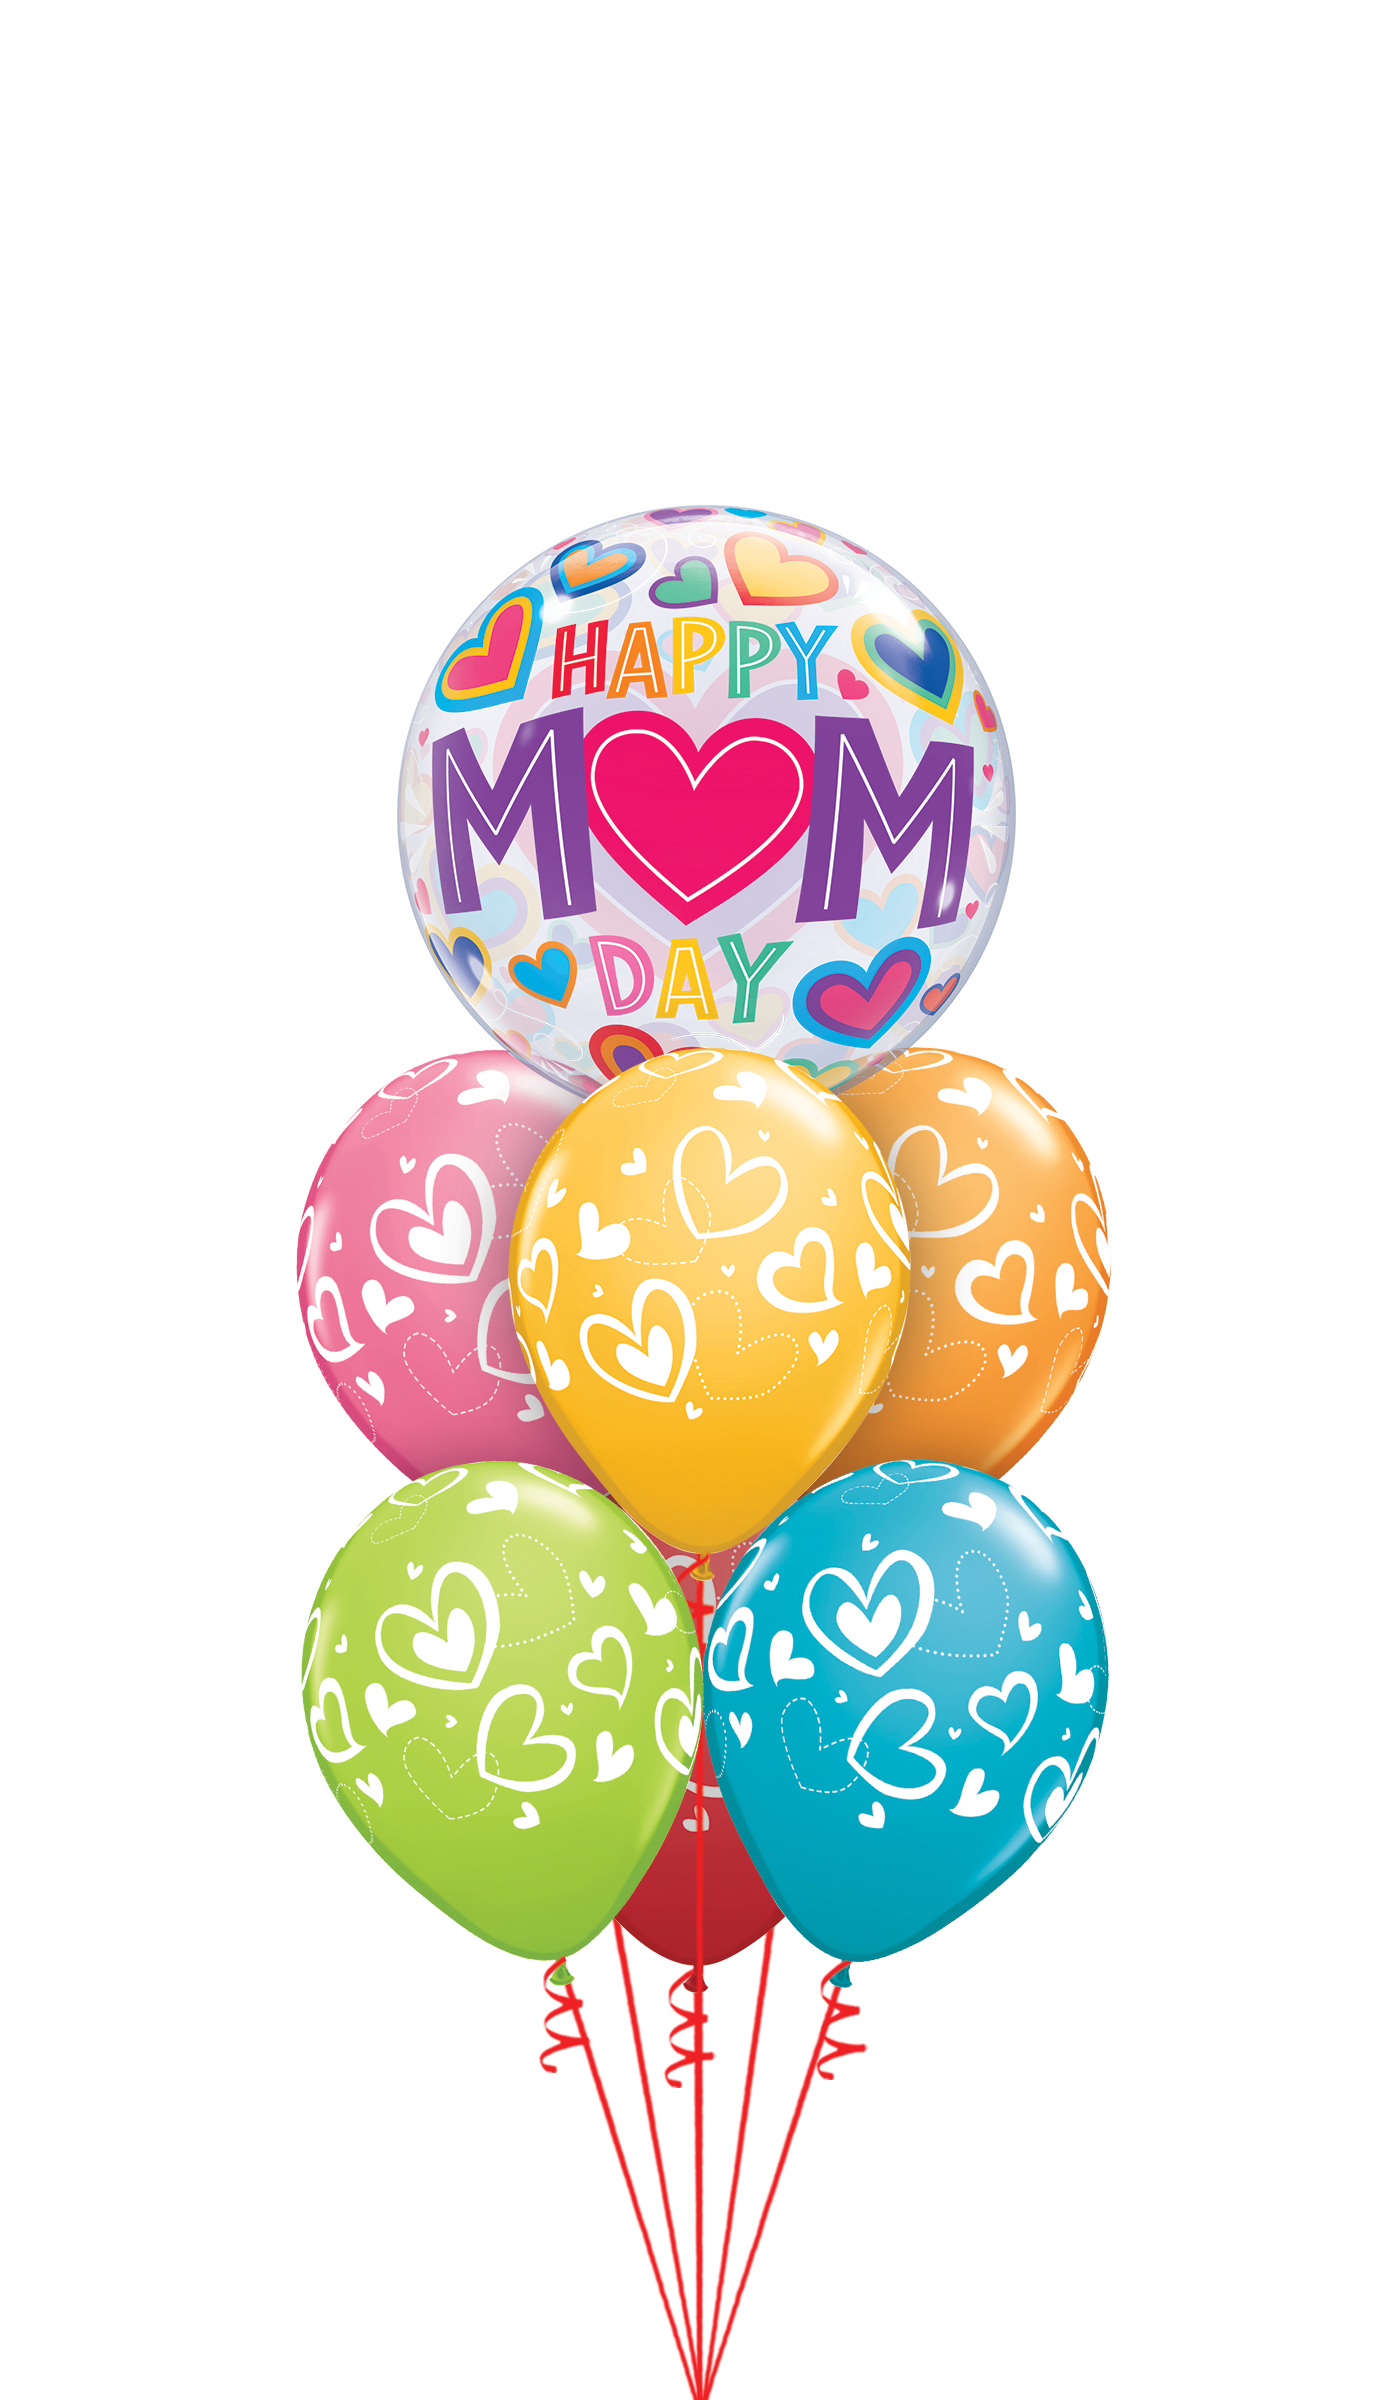 Mothers-day-balloons